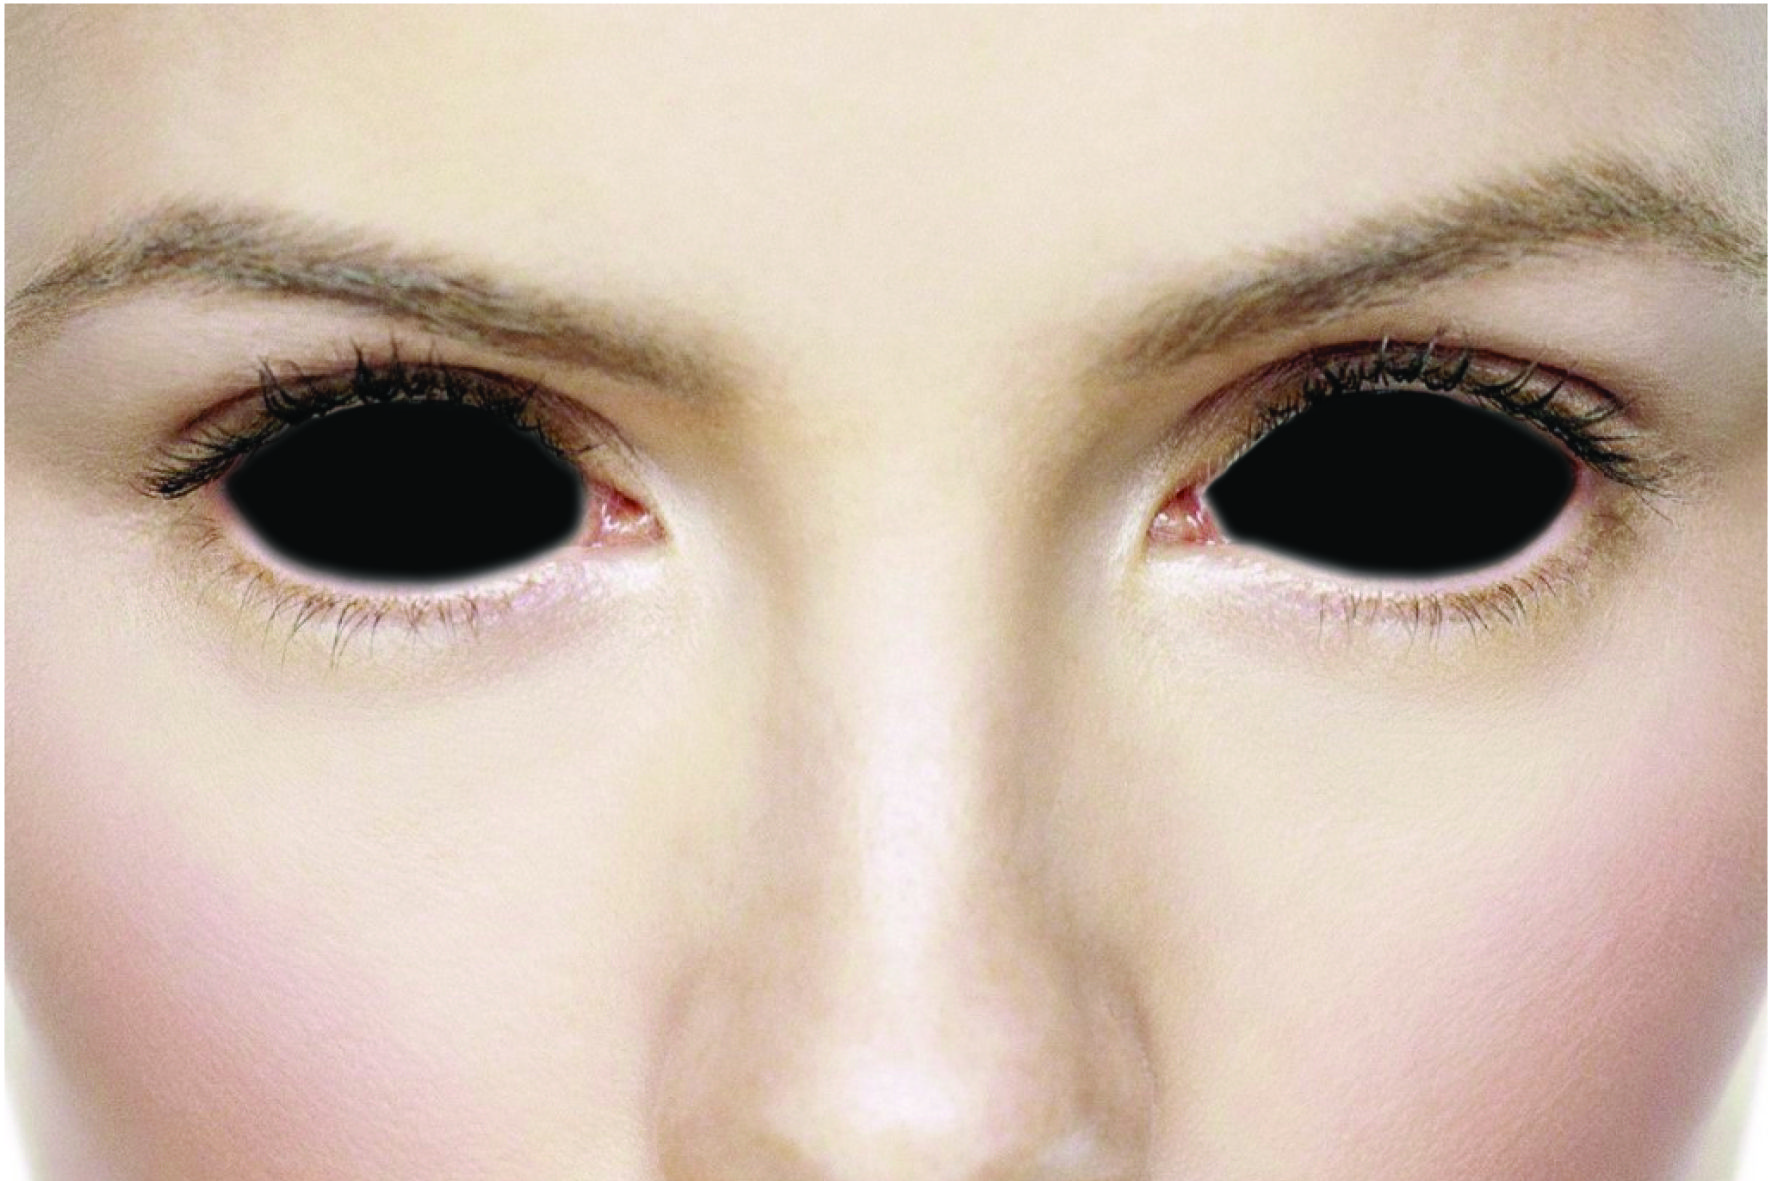 black sclera 22mm full eye covered beauty palette black